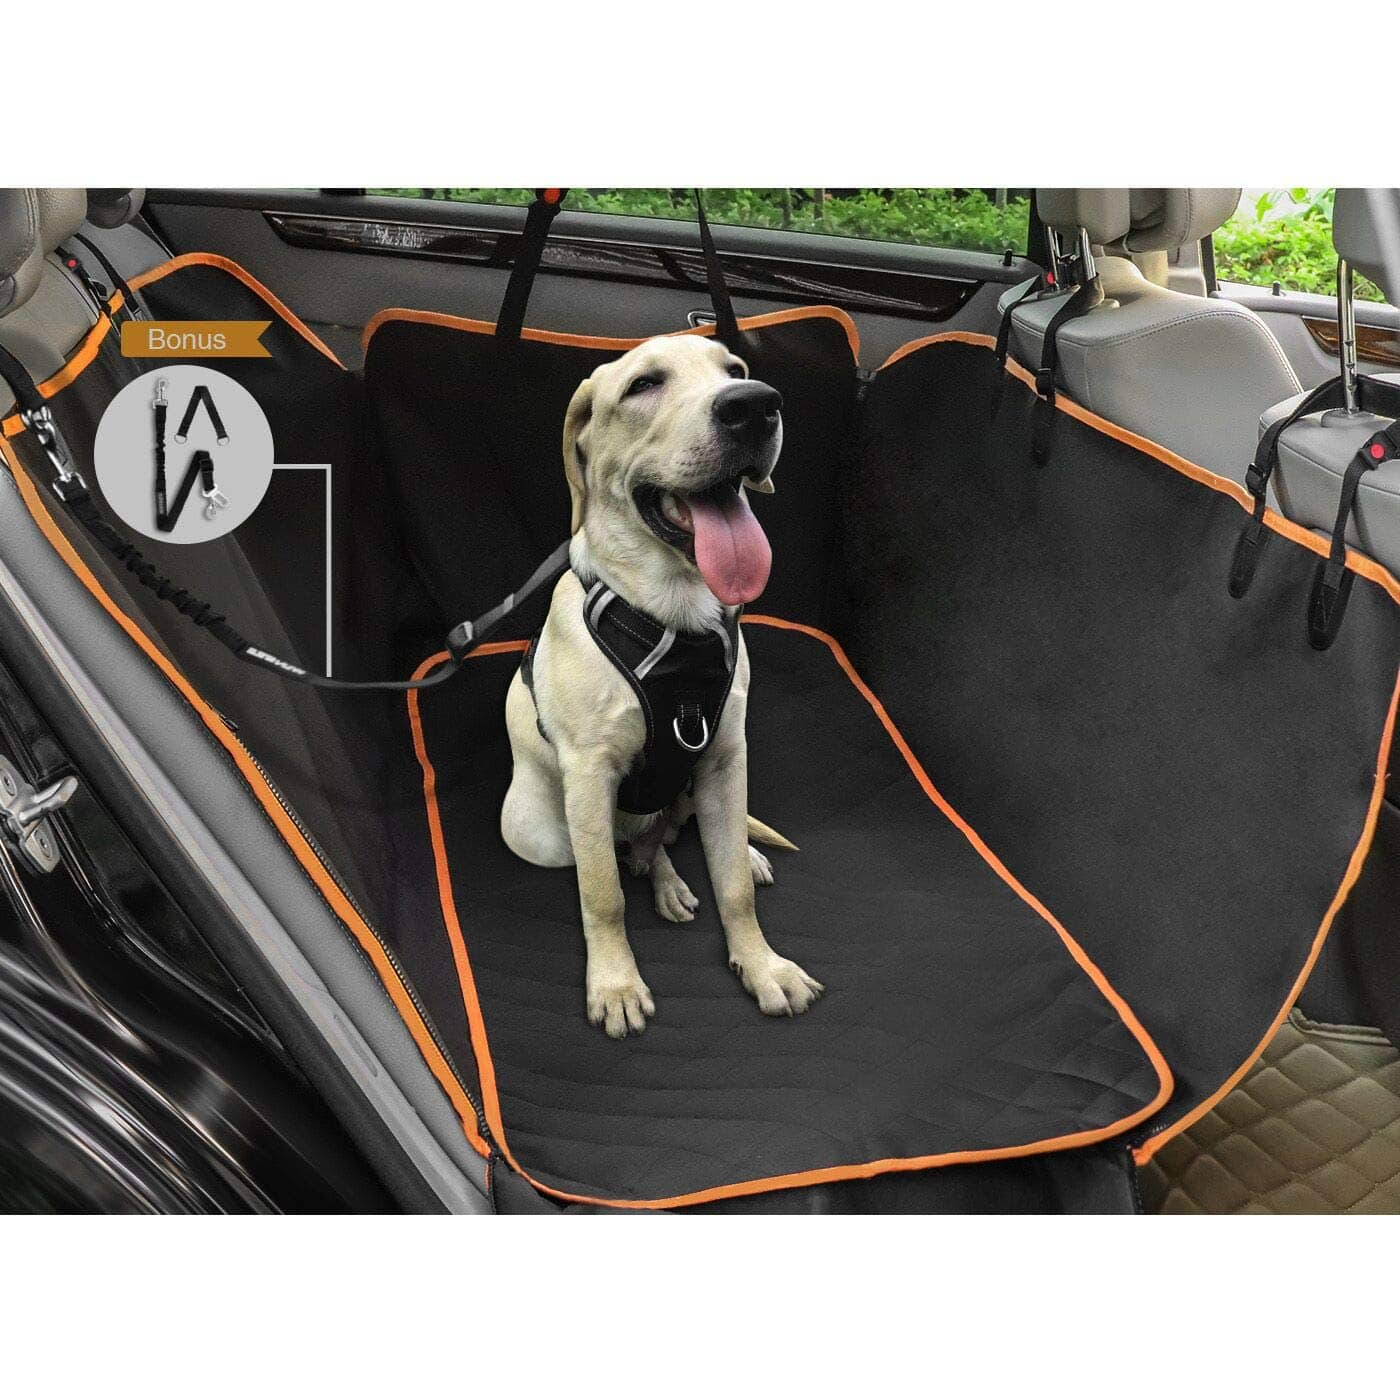 WINSEE Dog Seat Covers for Cars/Trucks/SUV, Dog Car Hammock Car Seat Protector, 100% waterproof - $22.91